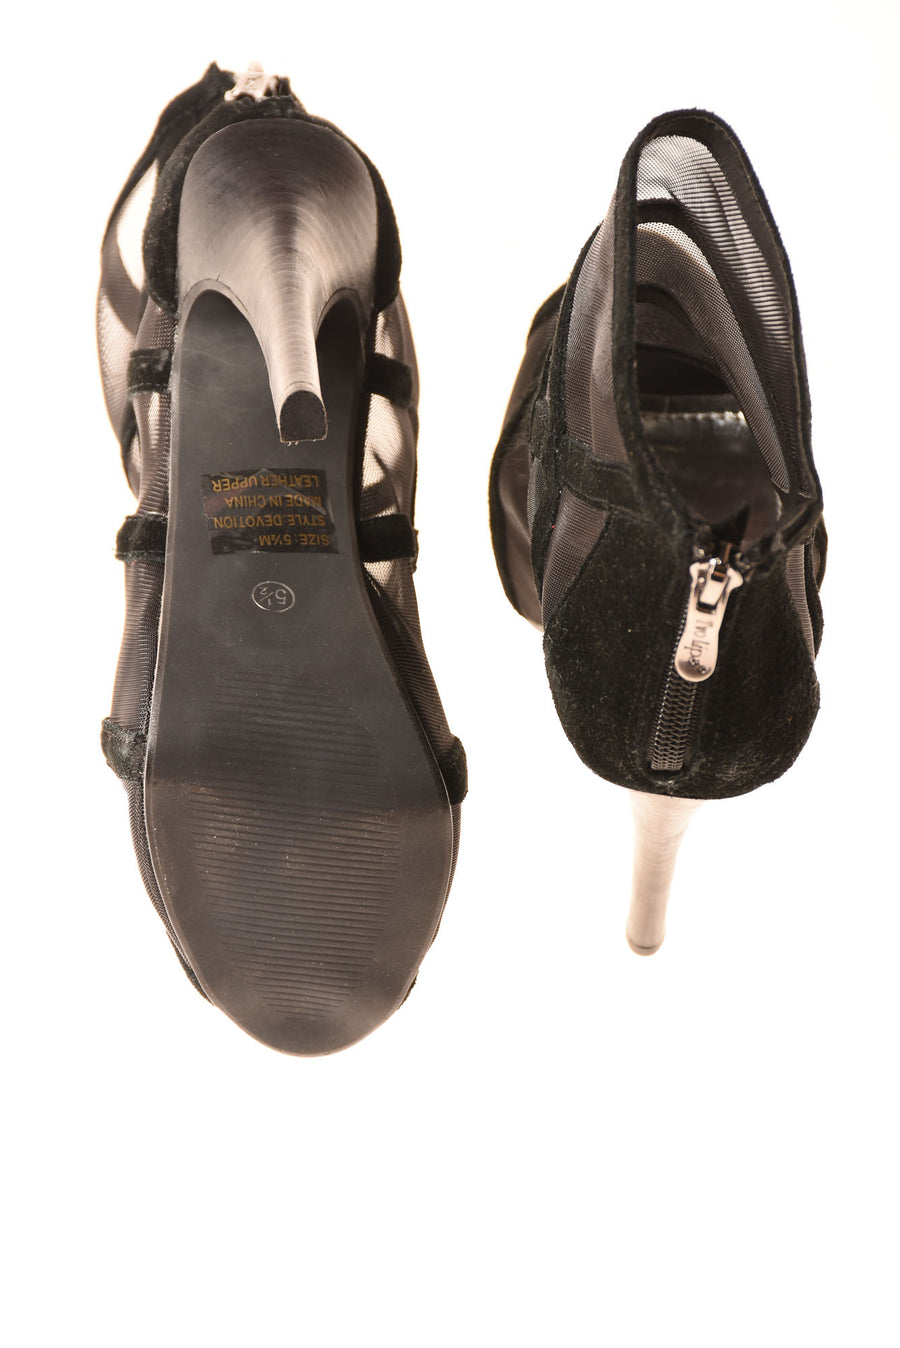 USED Two Lips Women's Shoes 5.5 Black